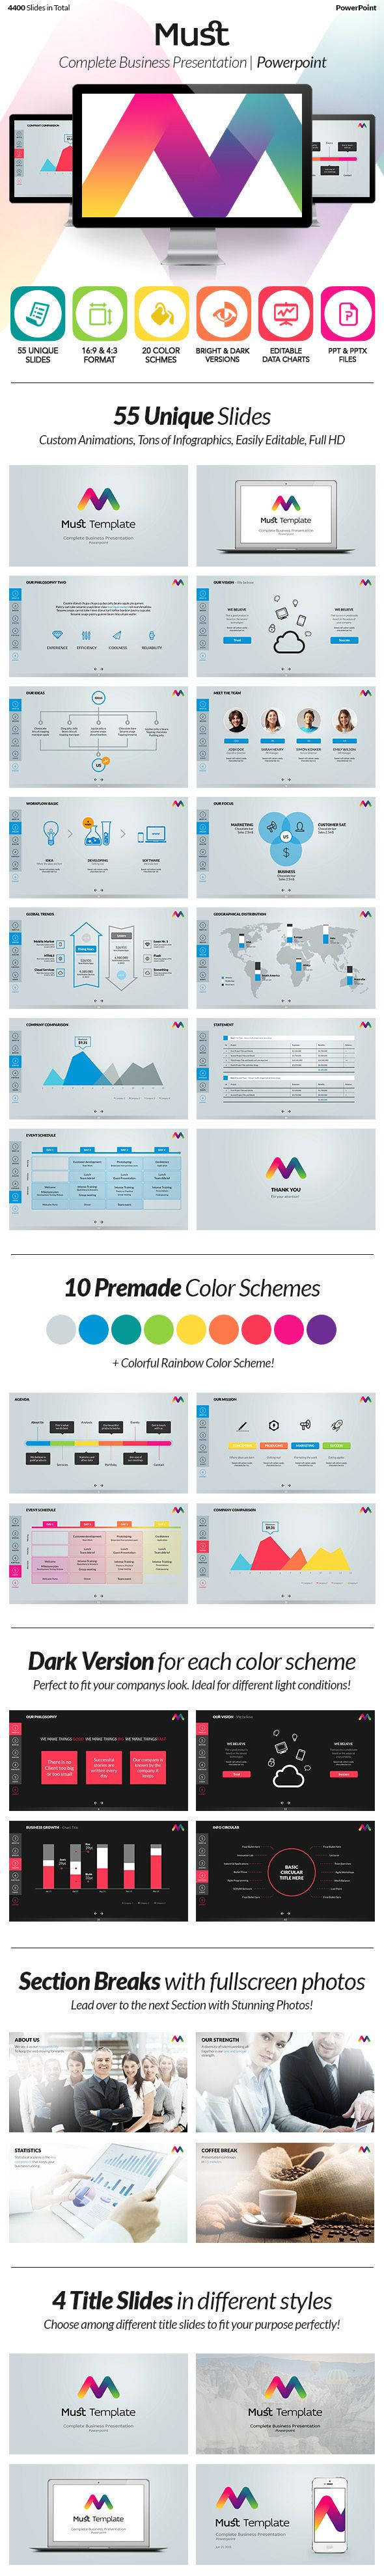 Must PowerPoint  Keynote Presentation Template on Behance